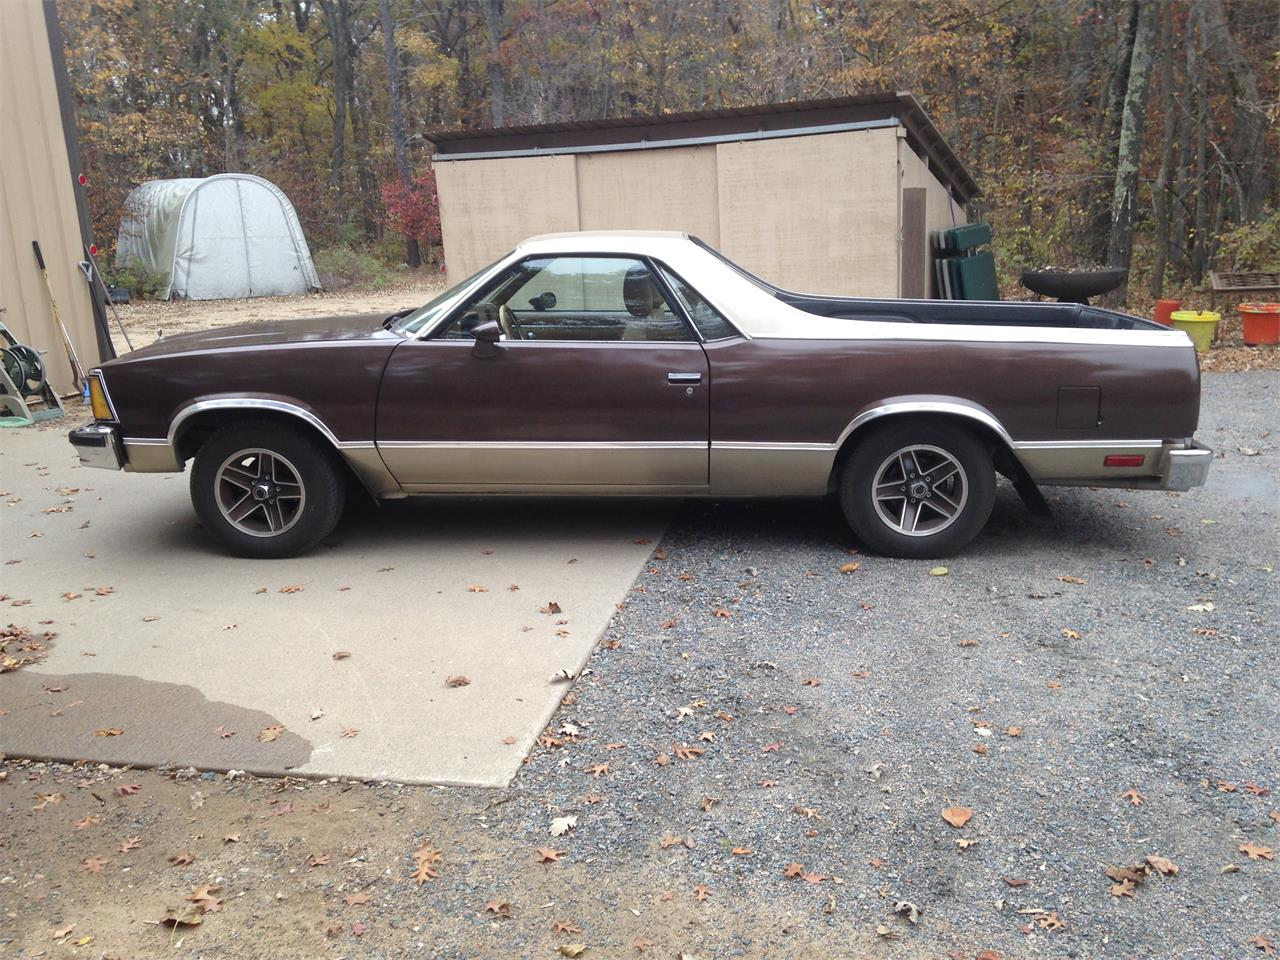 1980 El Camino Gas Mileage For Sale 1980 Chevrolet El Camino In Fort Ripley Minnesota